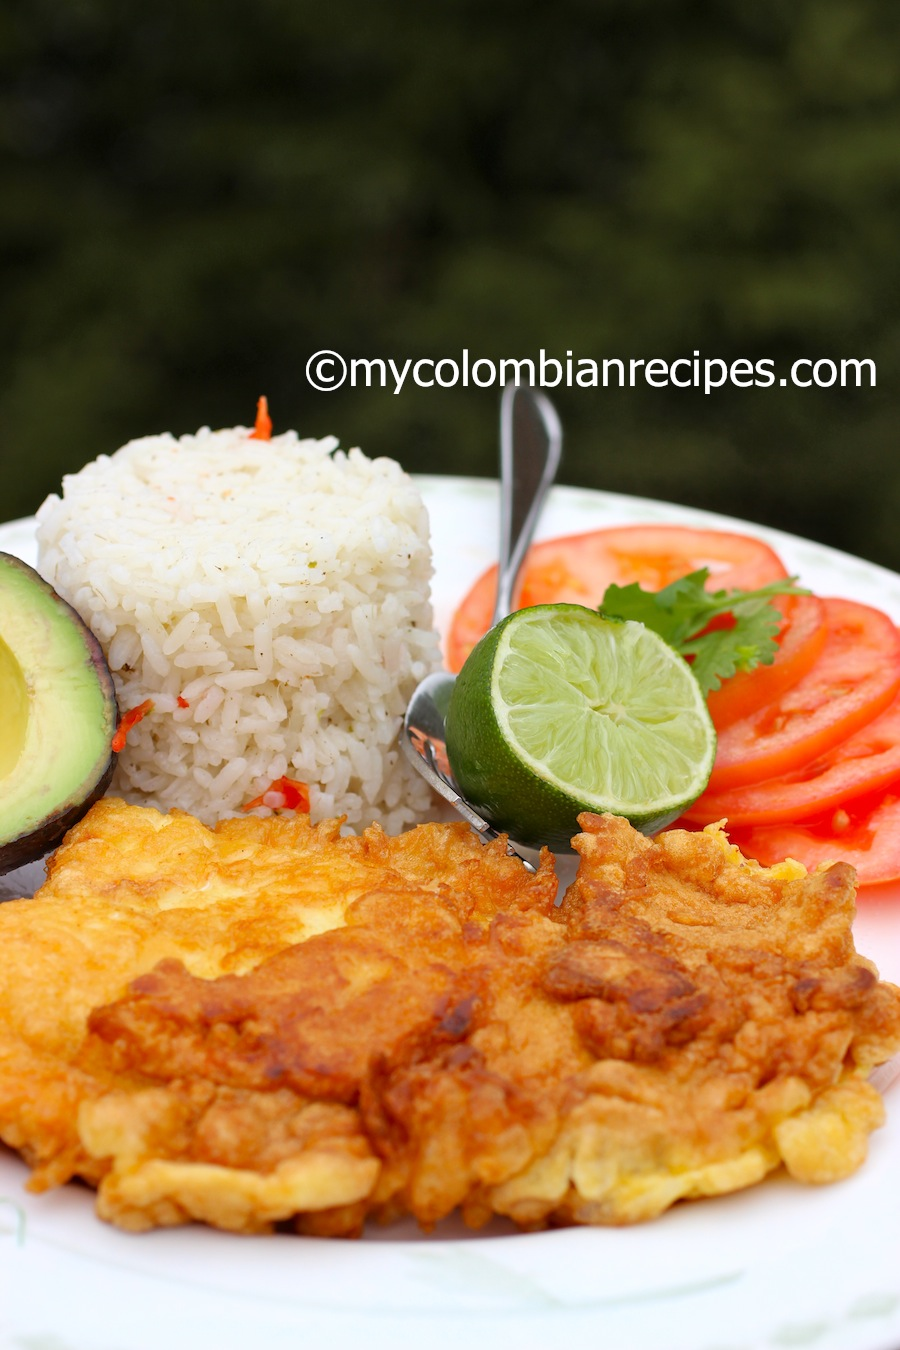 10 Seafood Recipes For Lent My Colombian Recipes